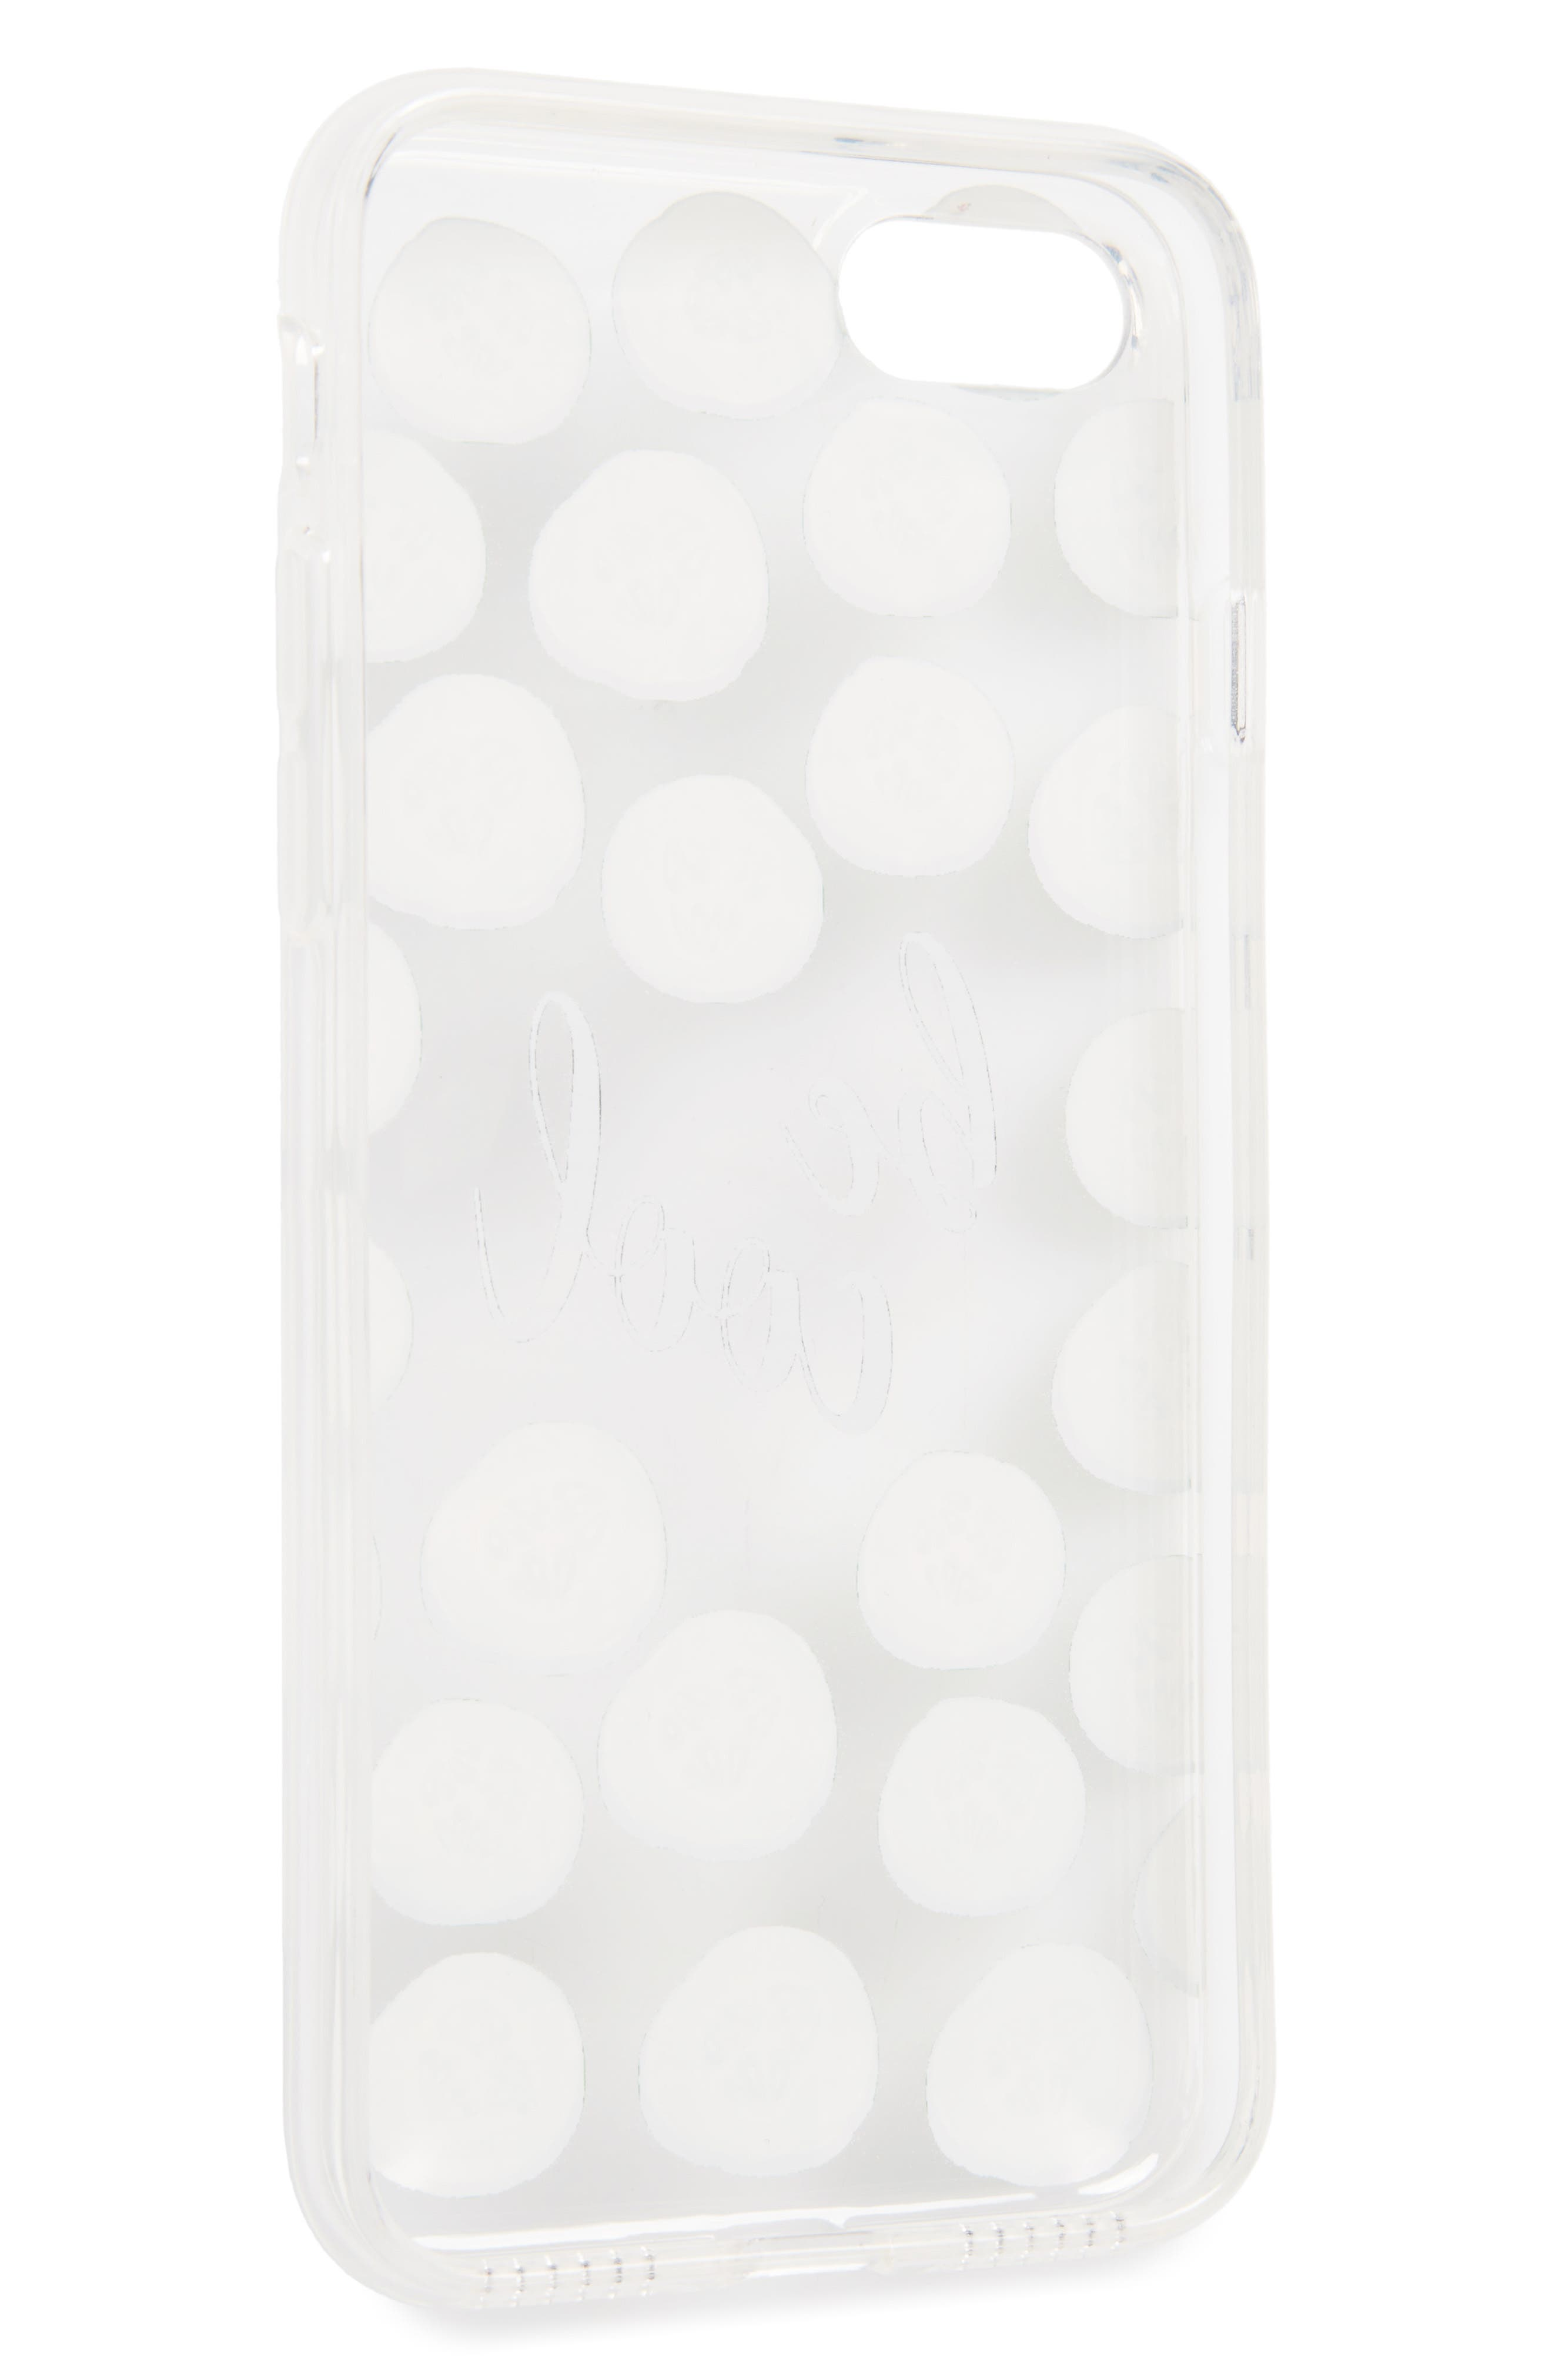 Be Cool Cucumbers iPhone 7 Case,                             Alternate thumbnail 2, color,                             300